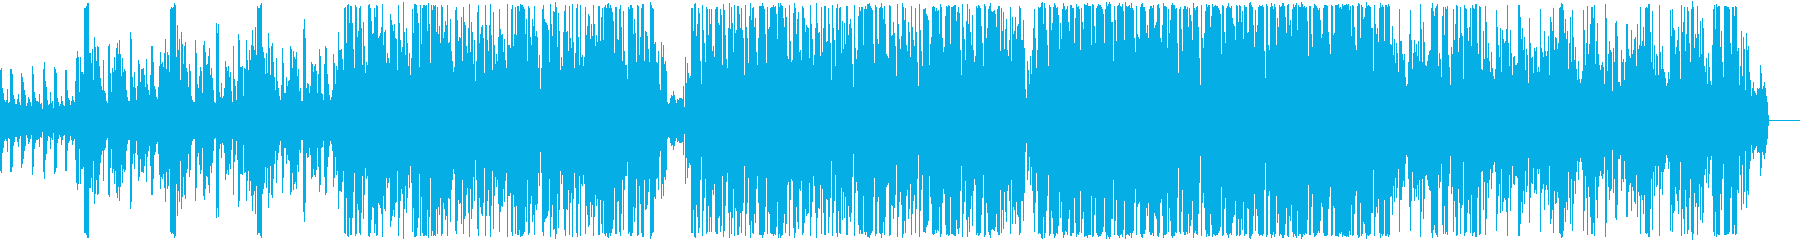 Somehow a funky feel's reproduced waveform